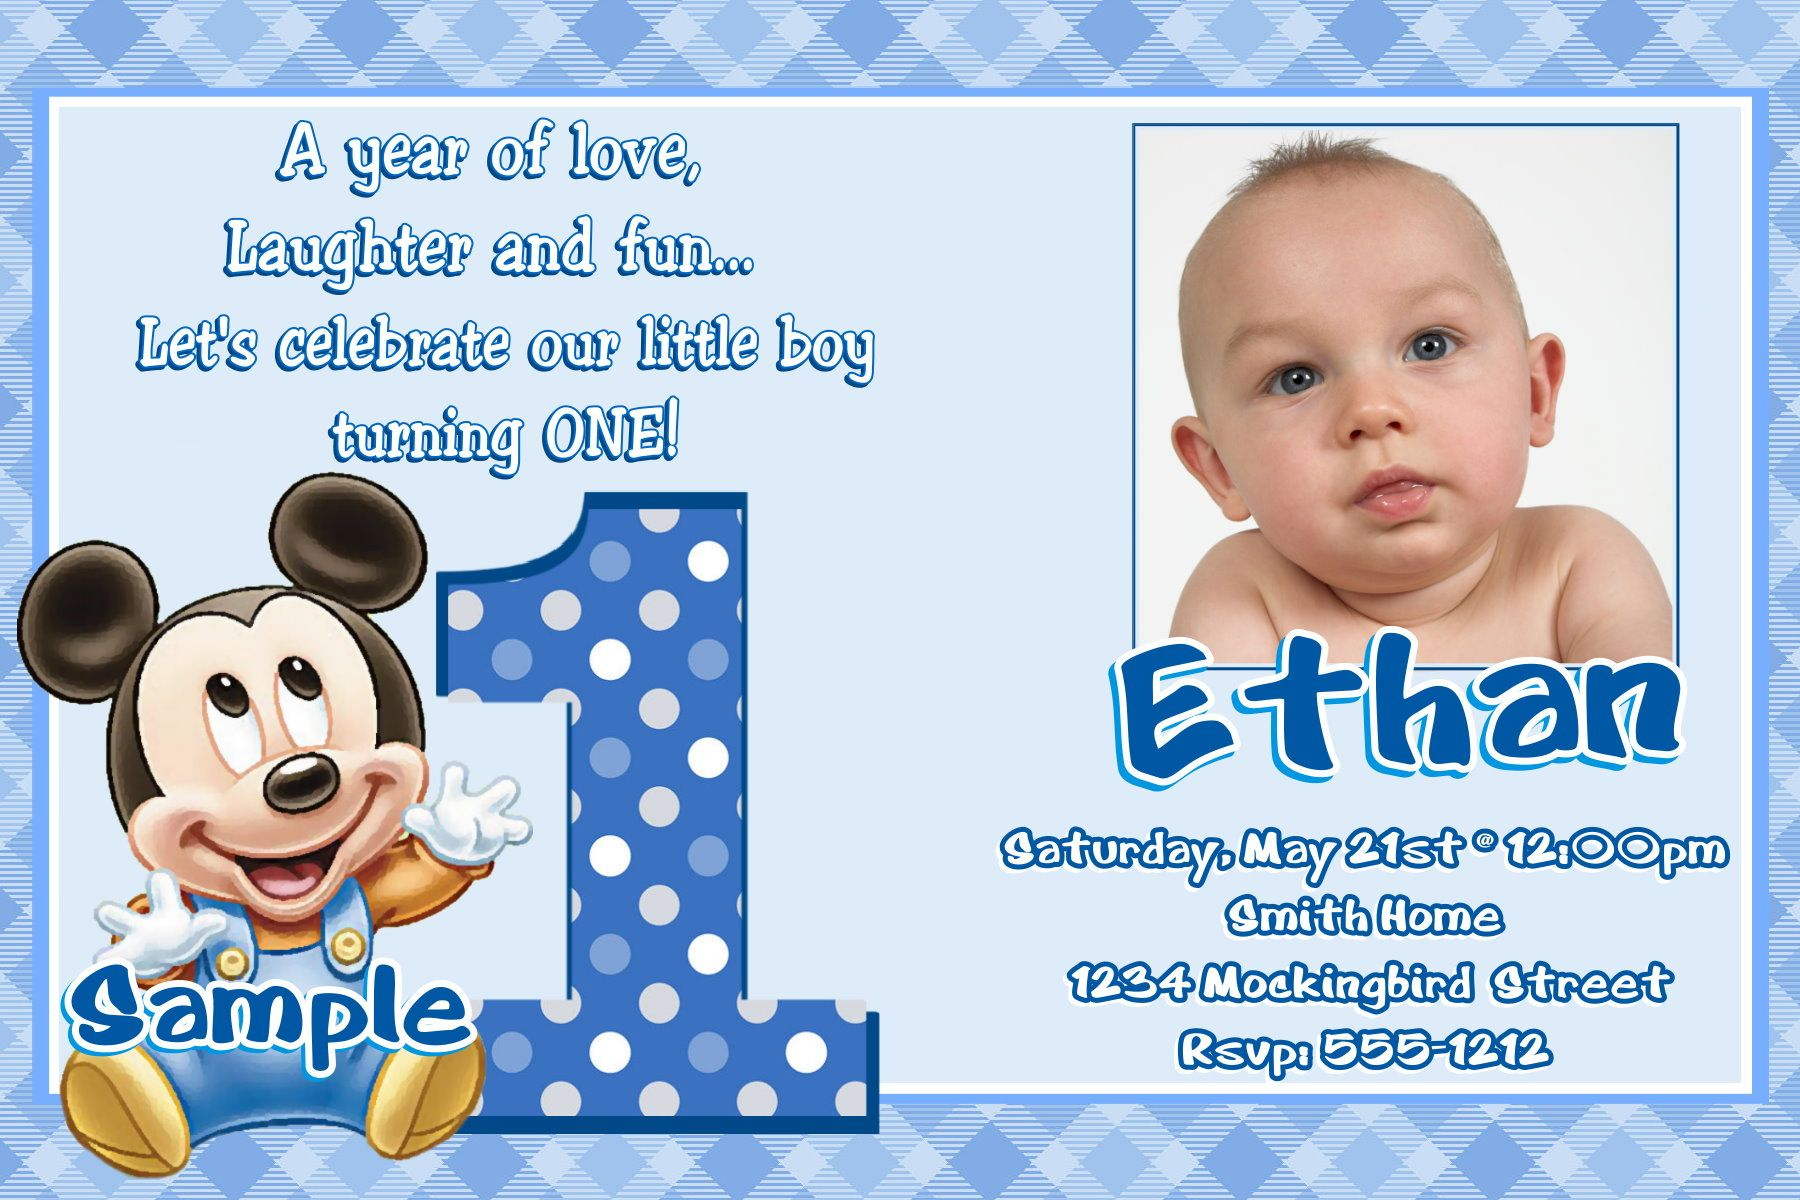 Sample Birthday Invitation Free Check more at http//www